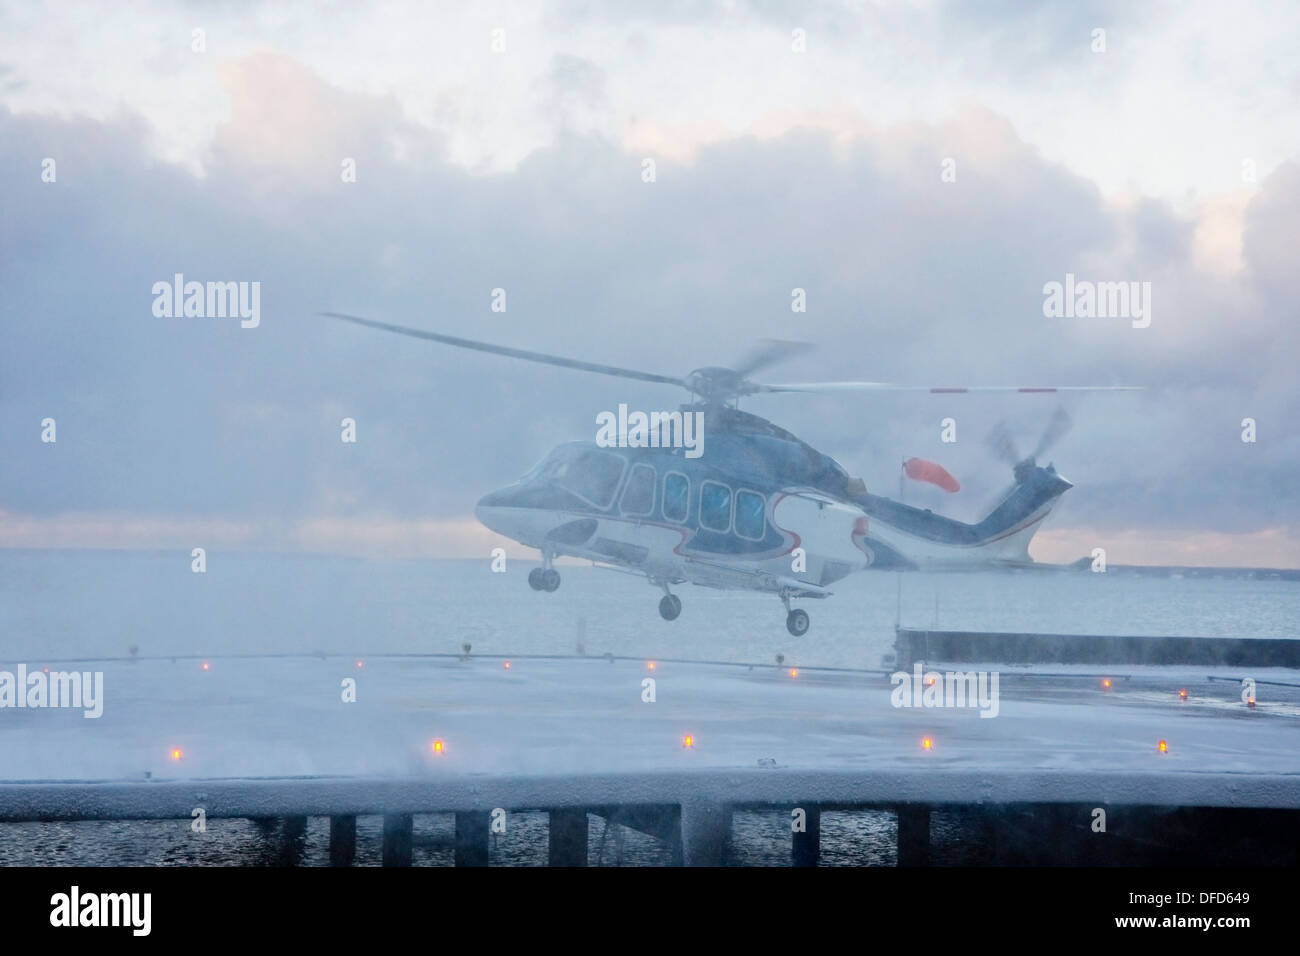 Helicopter in snow storm - Stock Image